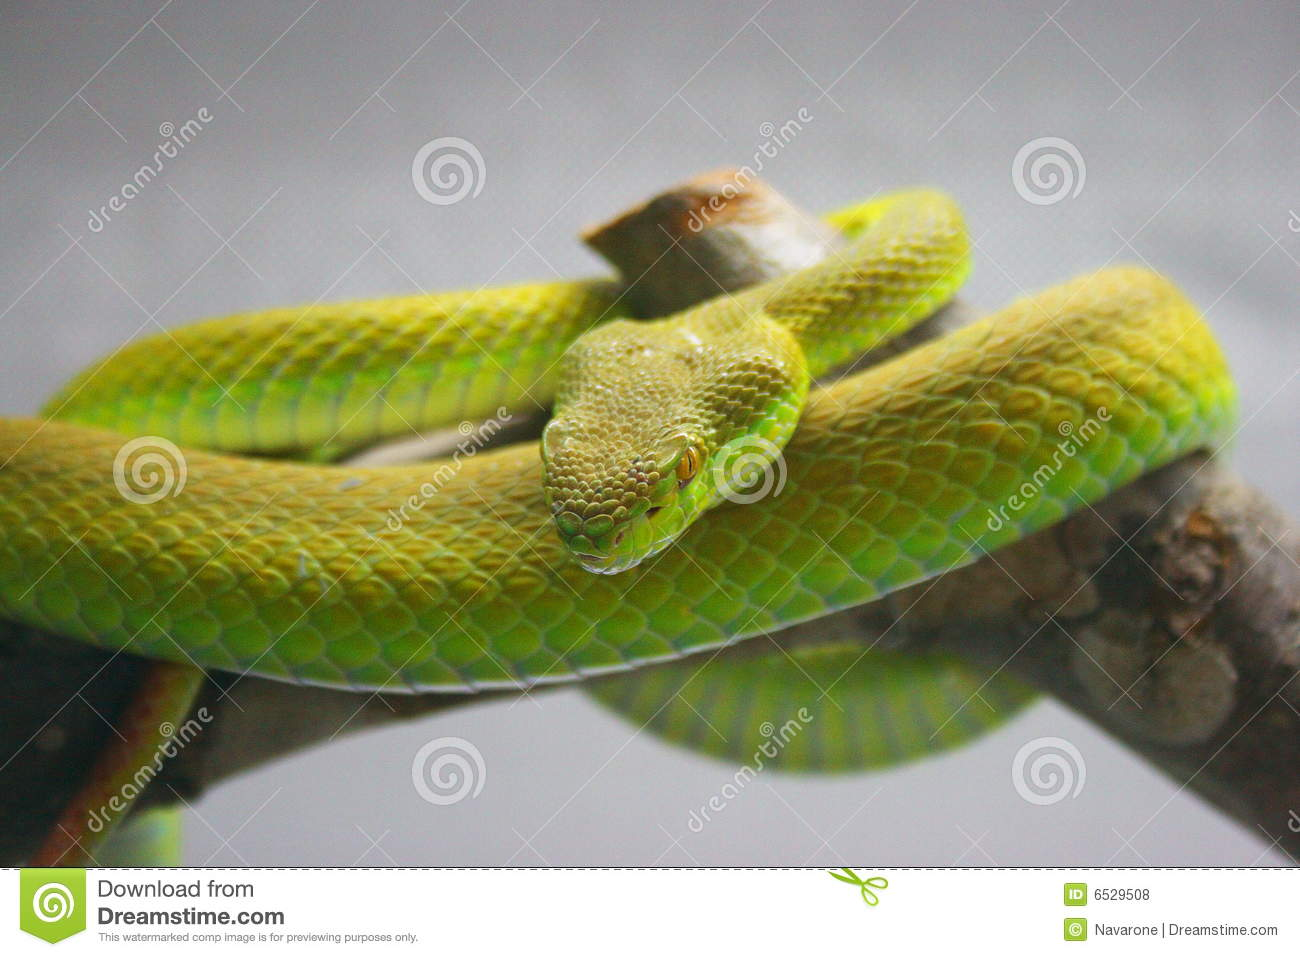 green snakes branches snake - photo #36